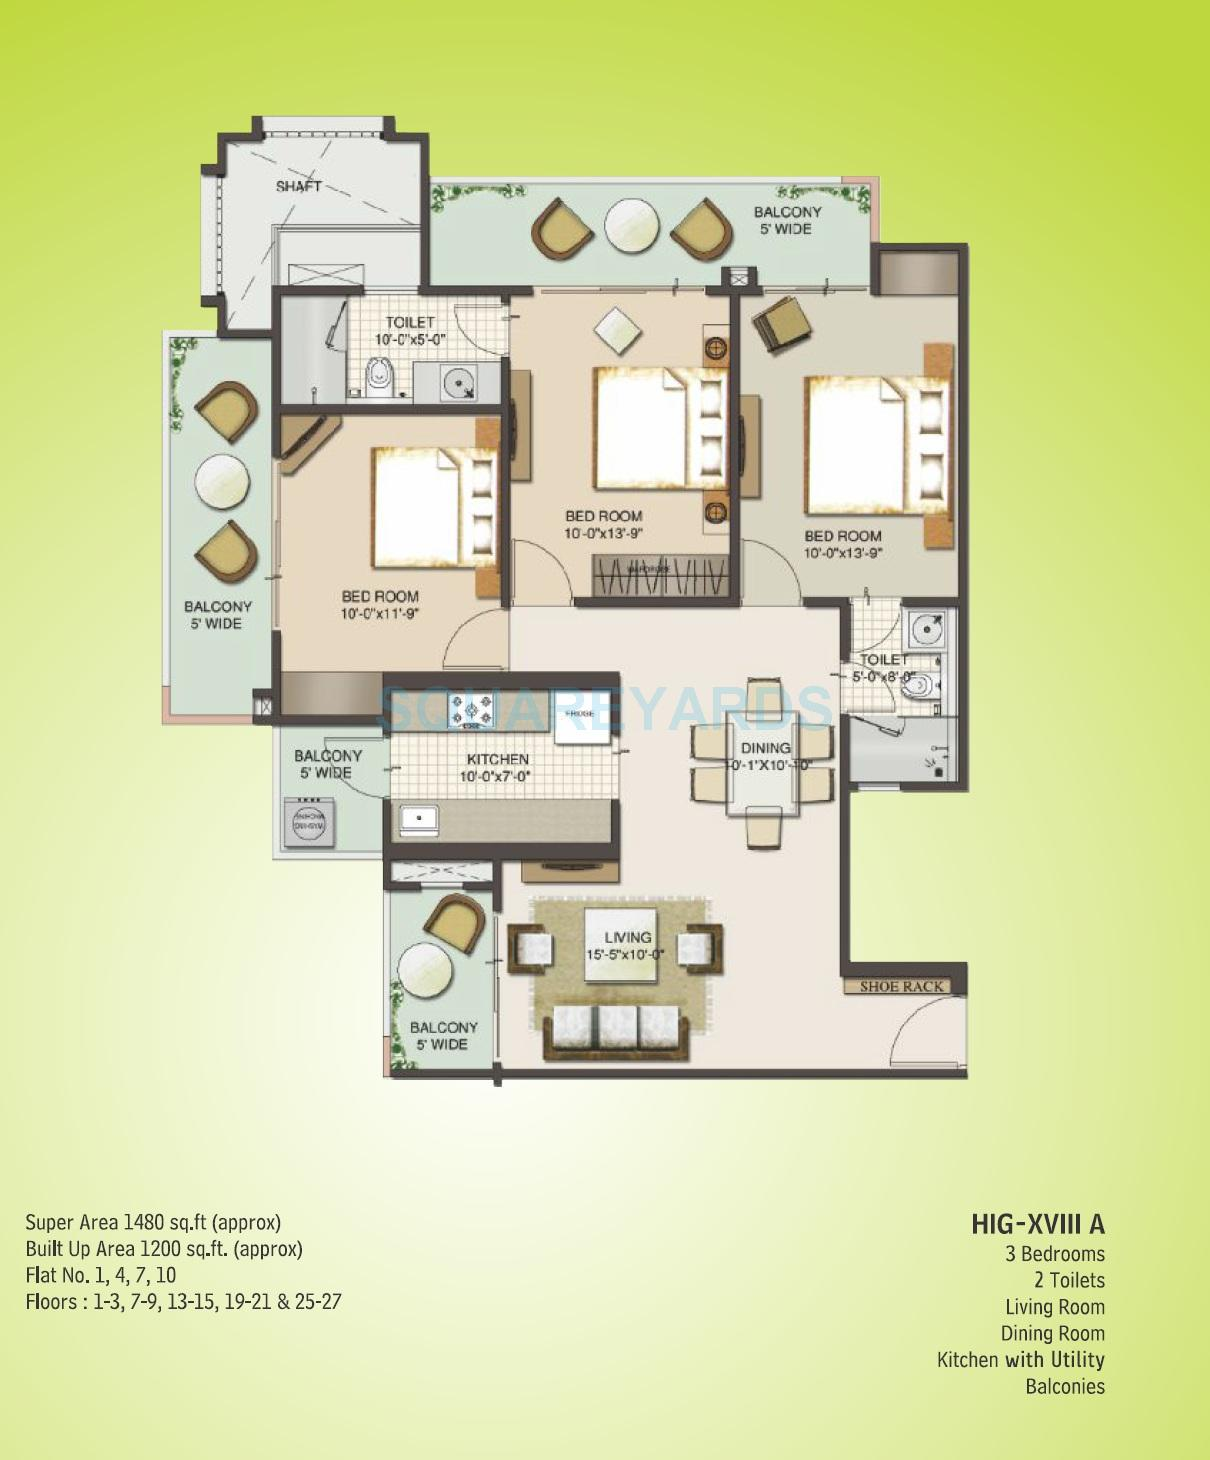 mahagun moderne verona apartment 3bhk 1480sqft 1